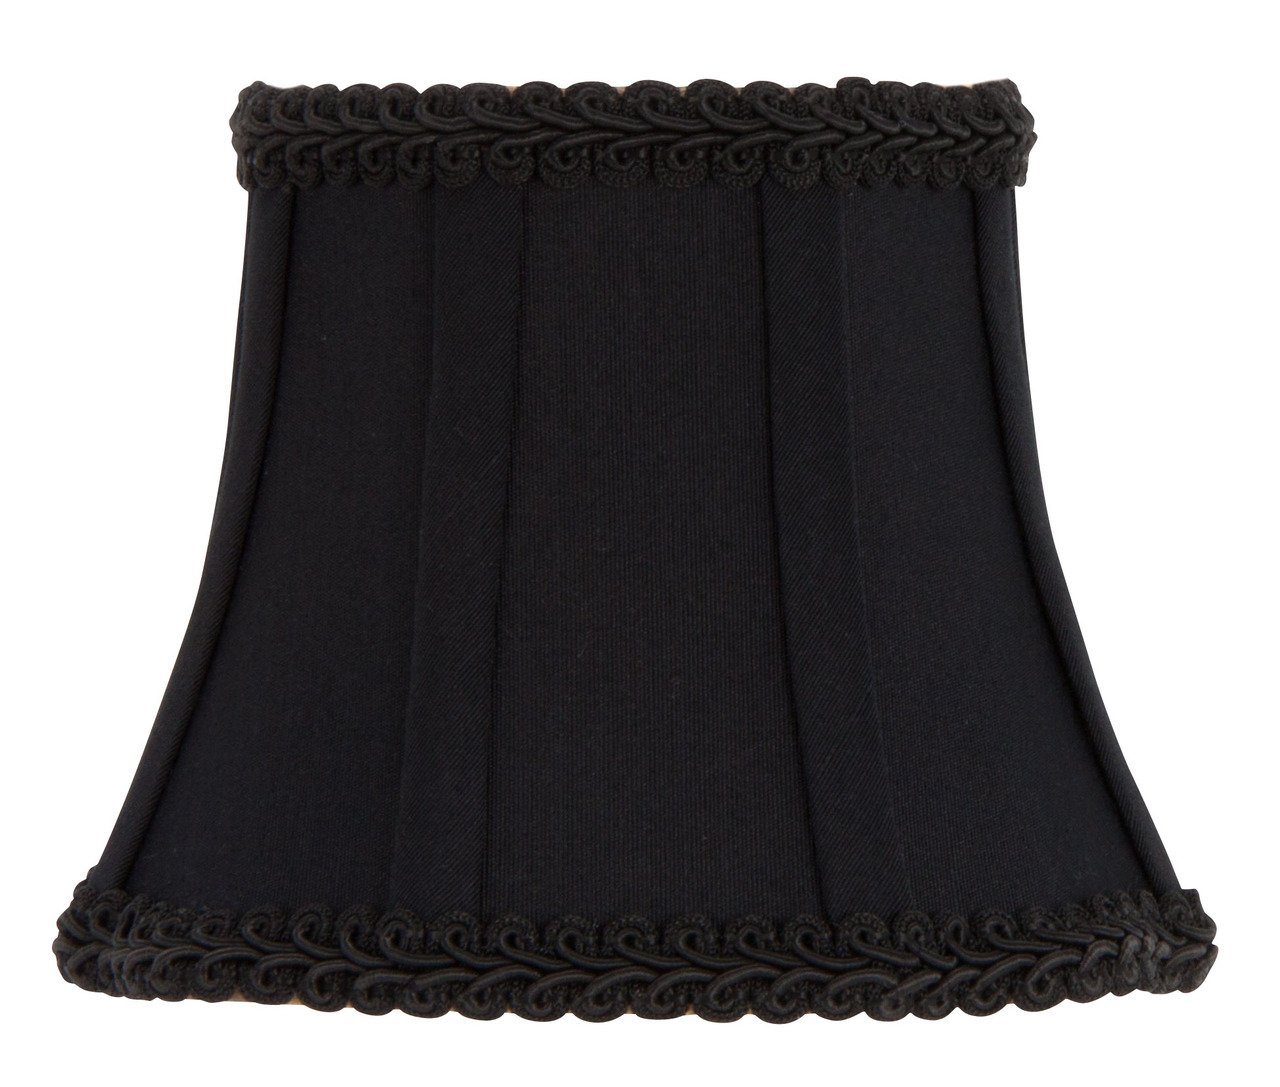 Upgradelights Black Wall Sconce Clip on Shield Lamp Shade Chandelier Half Shades